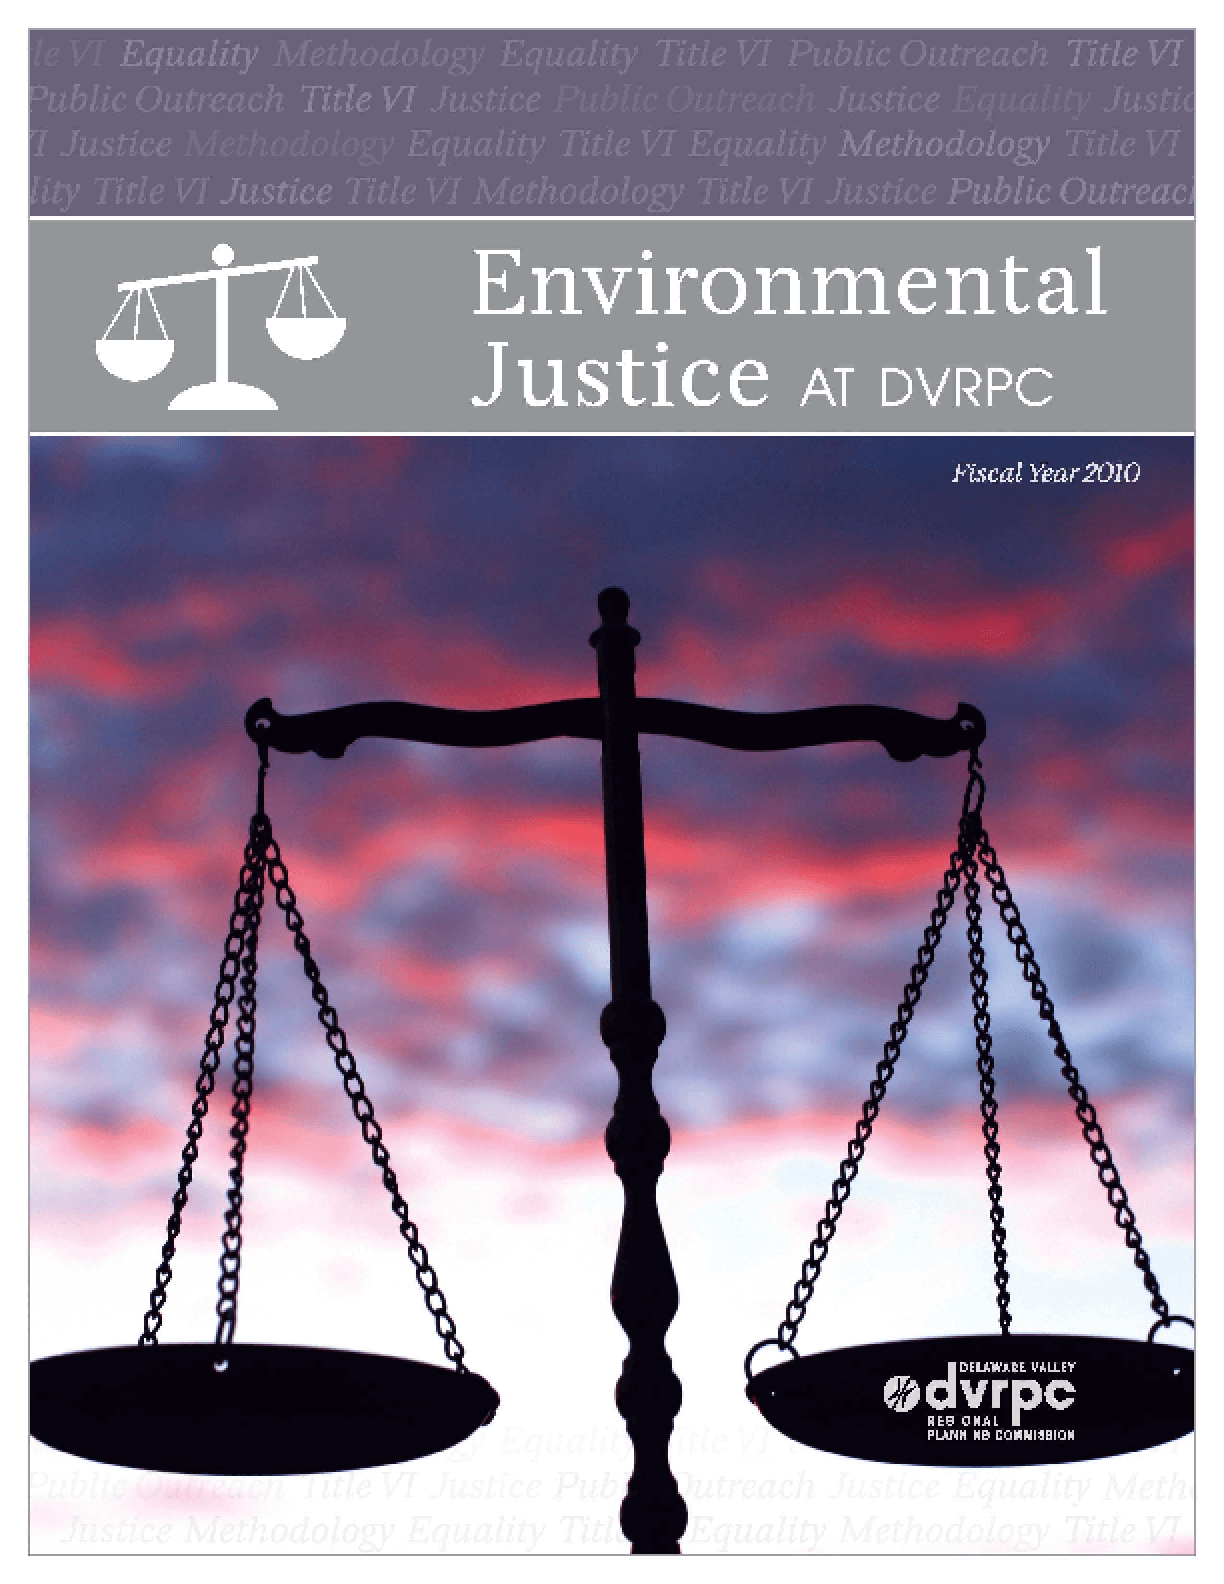 Environmental Justice at DVRPC: Fiscal Year 2010